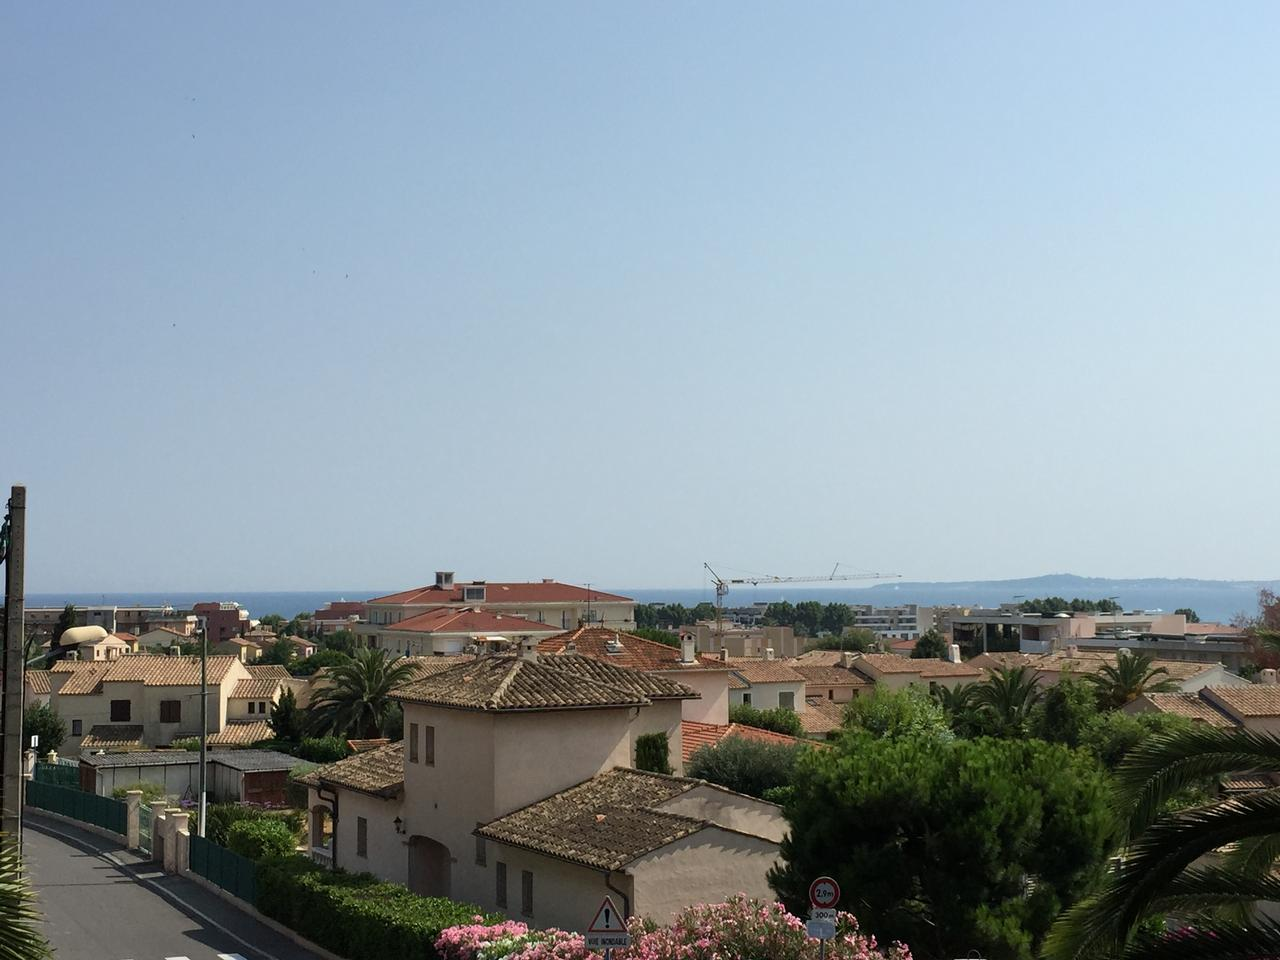 Vente appartement cagnes sur mer immobilier nice vue mer for Immobilier atypique nice